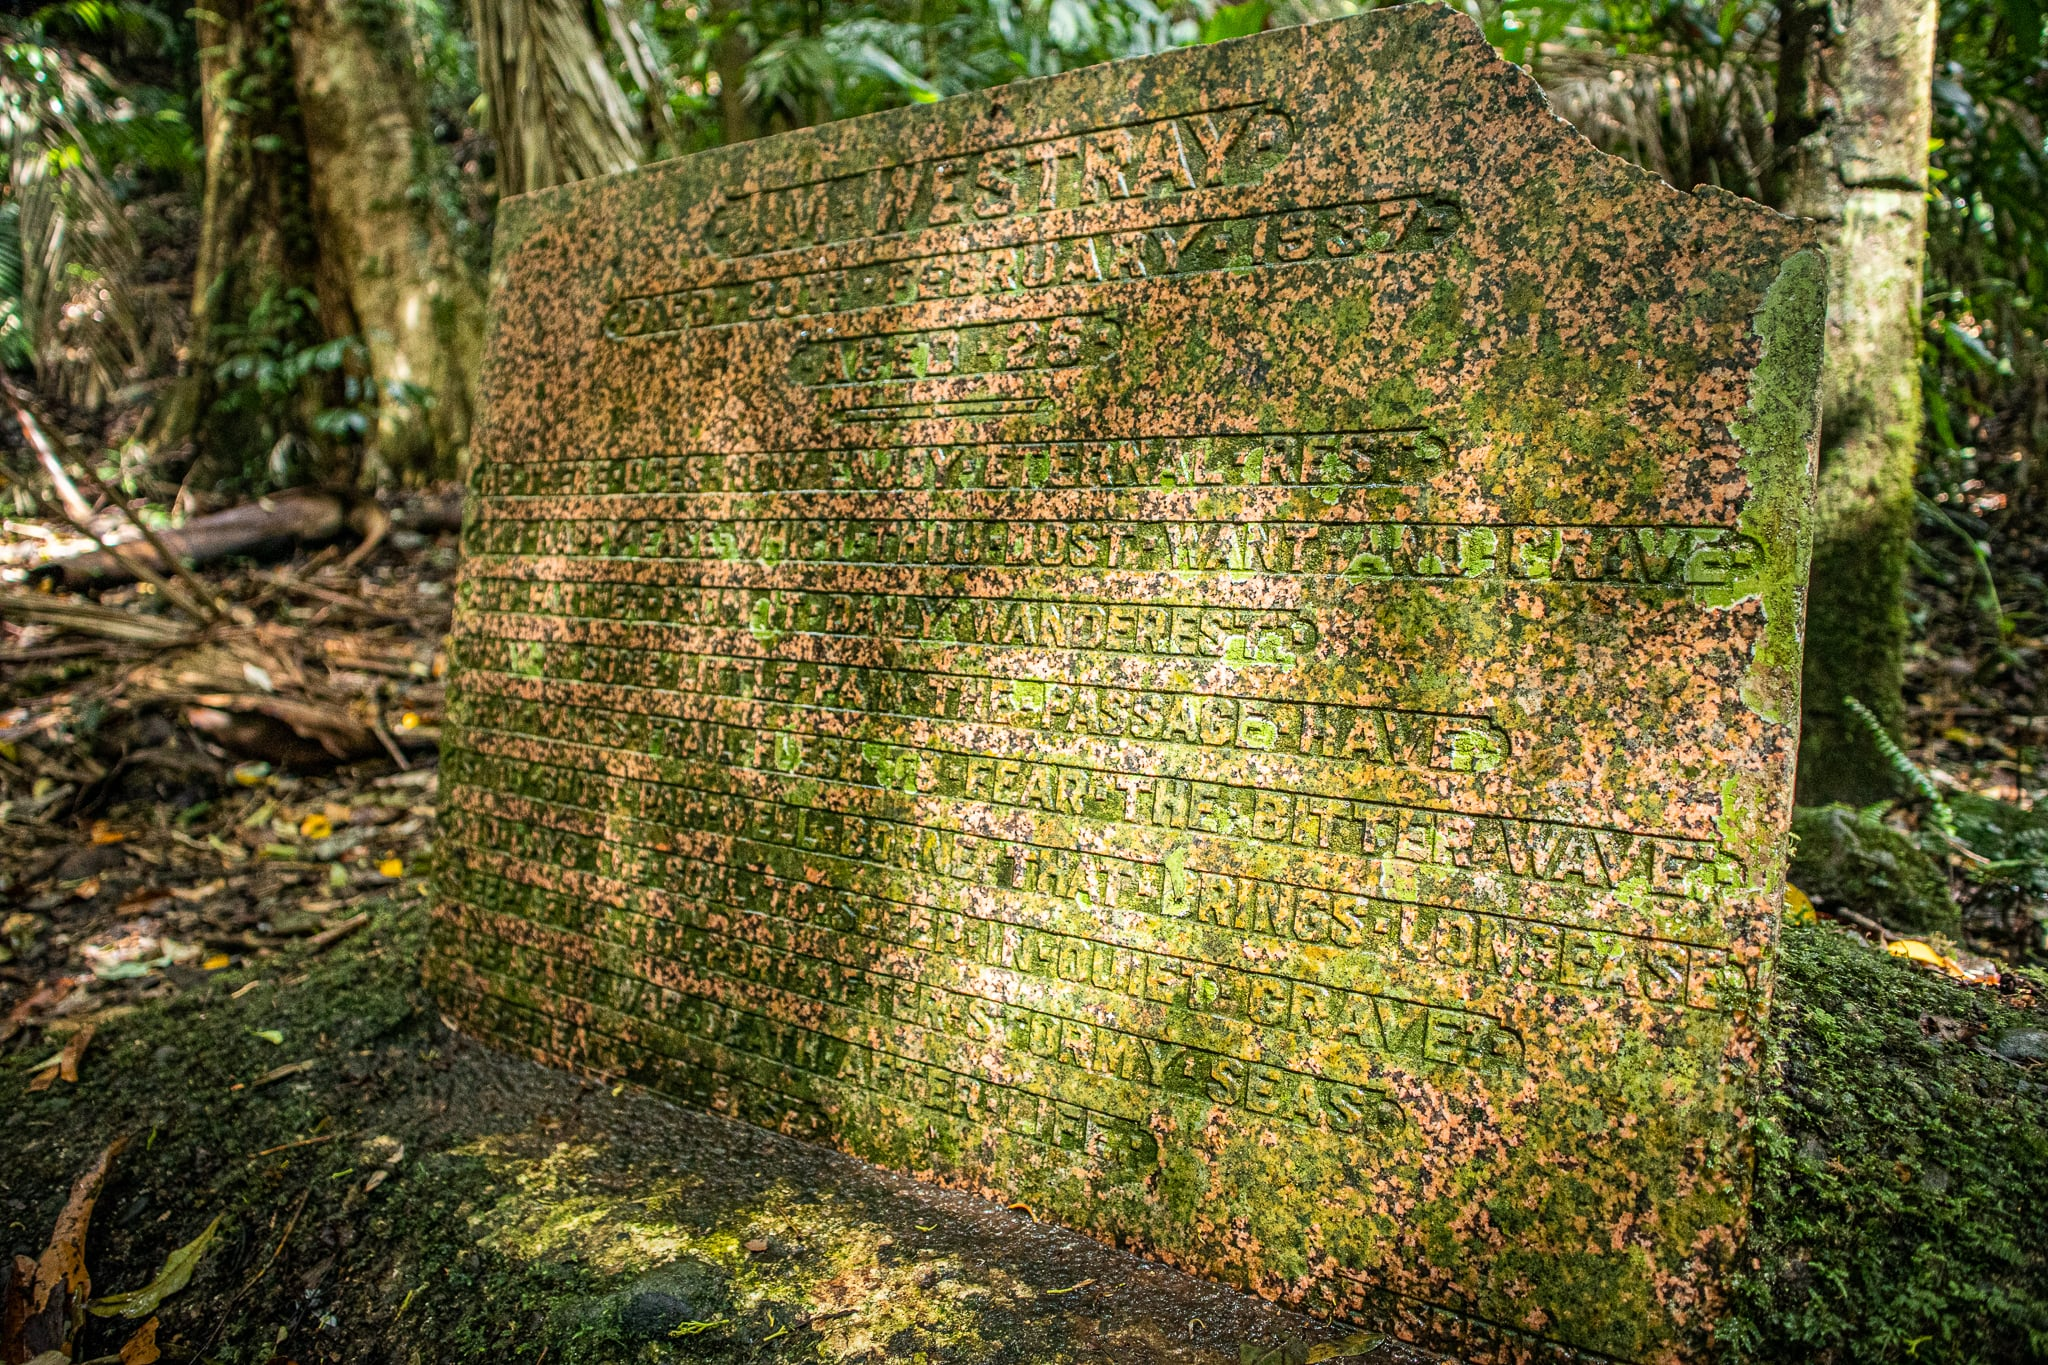 Westray's Grave in Lamington National Park nearby the hike to Stinson Wreck